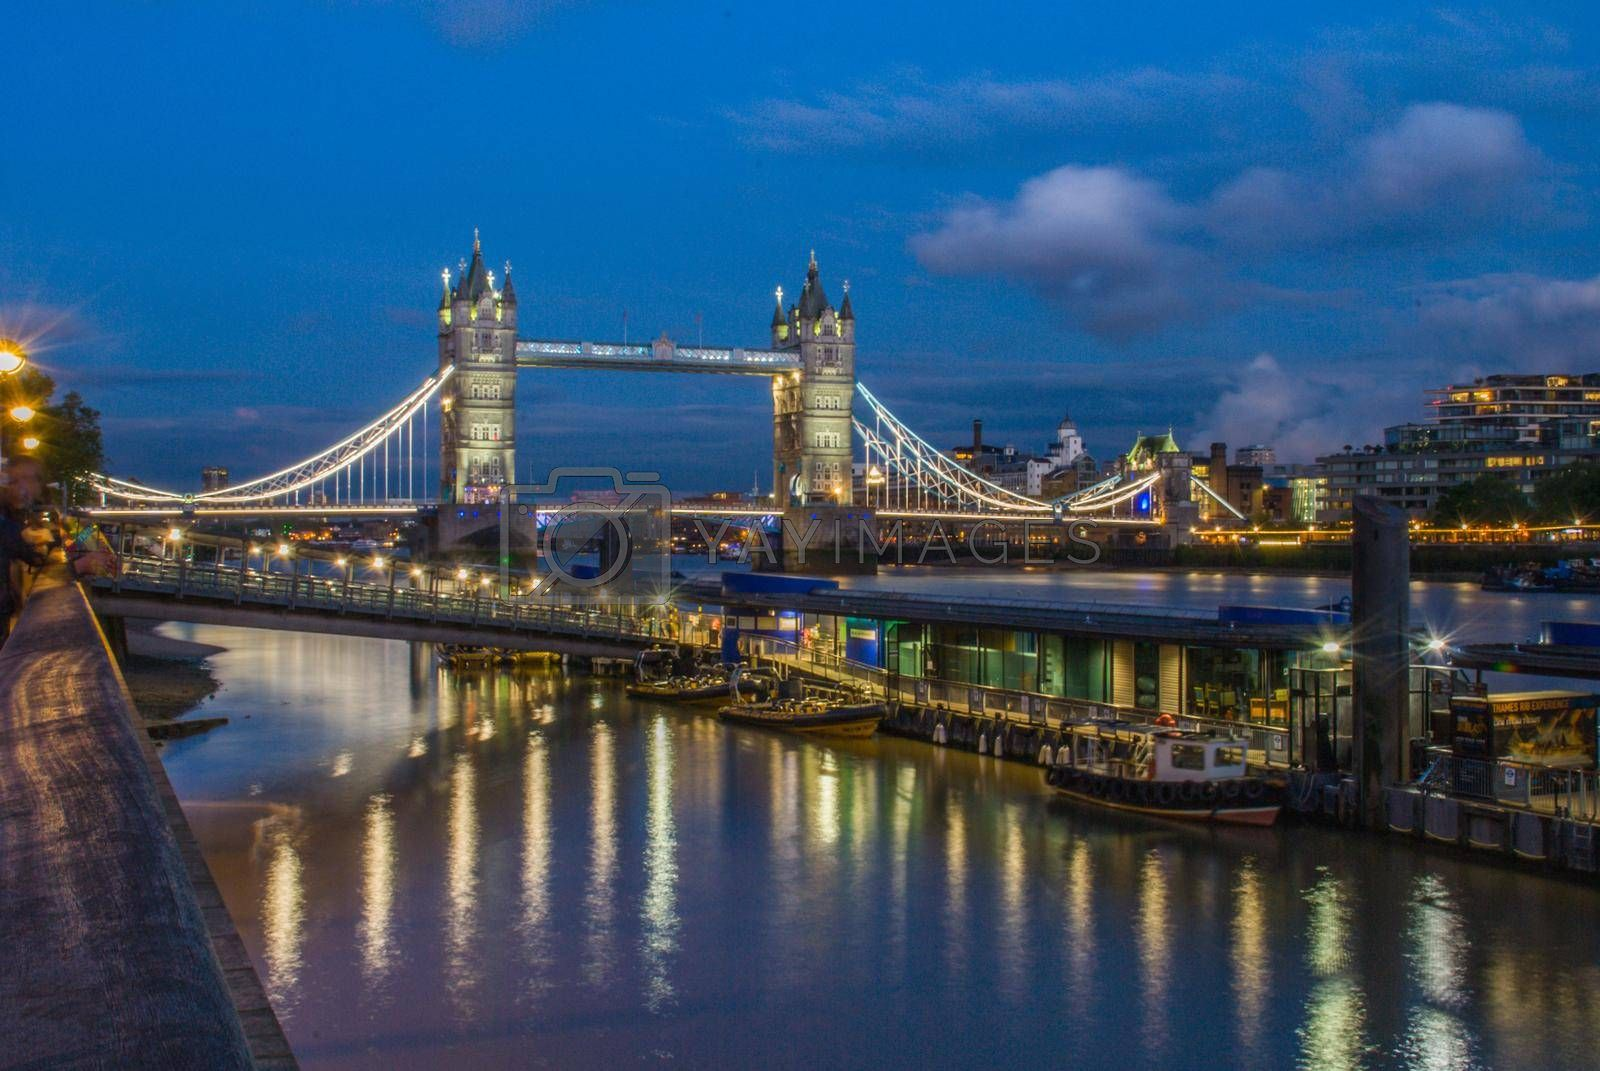 Night cityscape with Famous Tower Bridge in the evening with blue sky and reflex on water, London, England